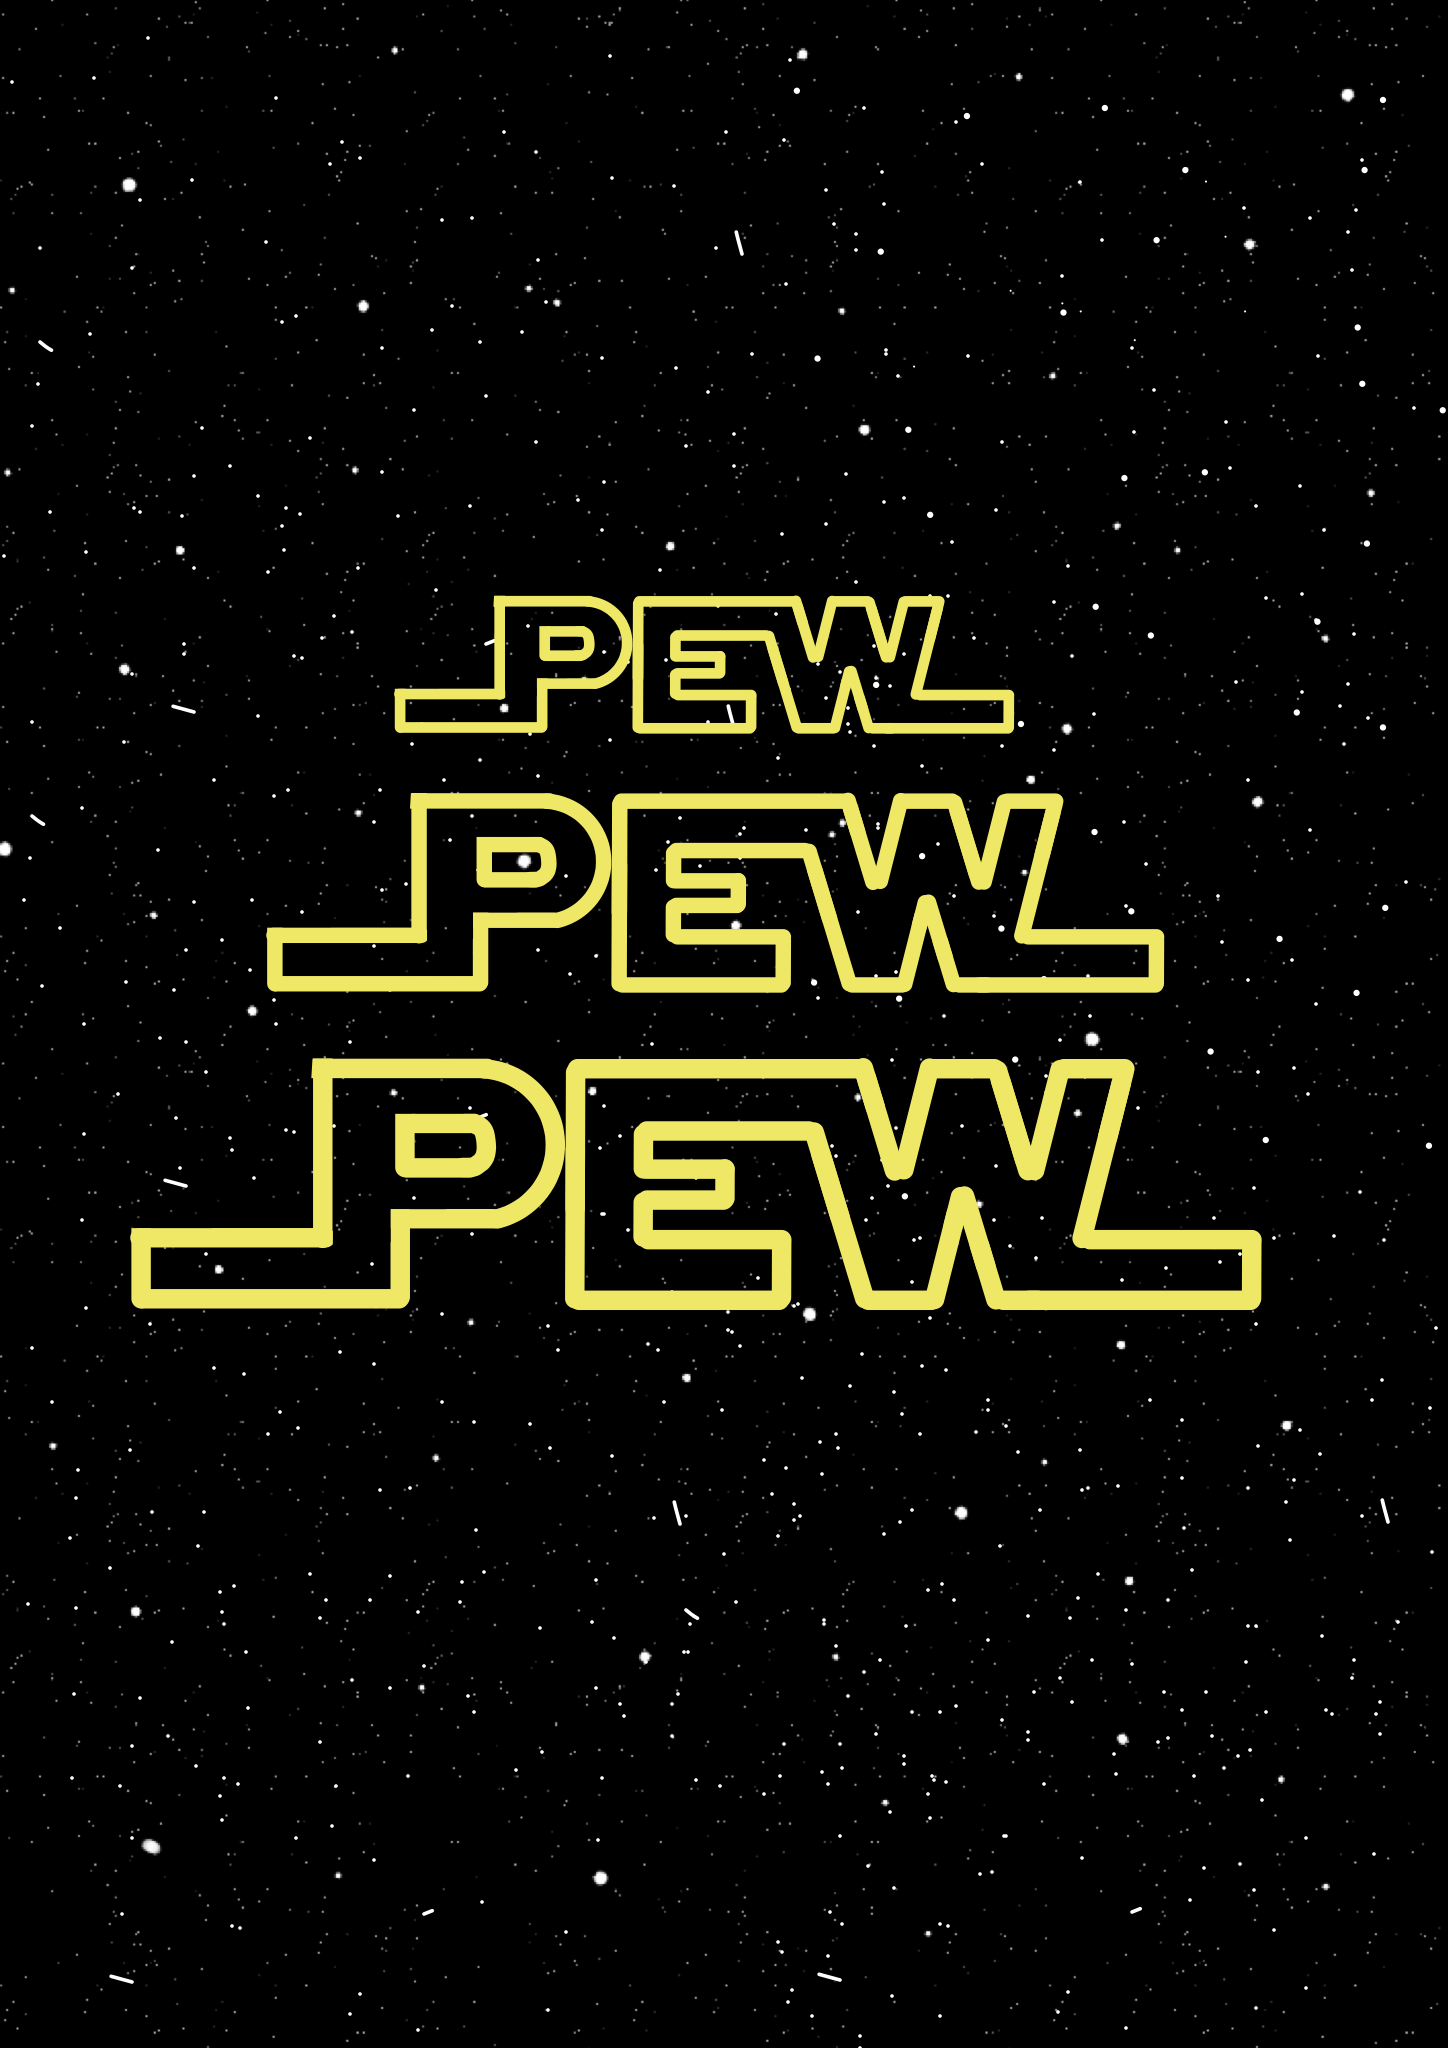 Star Wars crawl iPhone wallpaper  Pew pew pew from